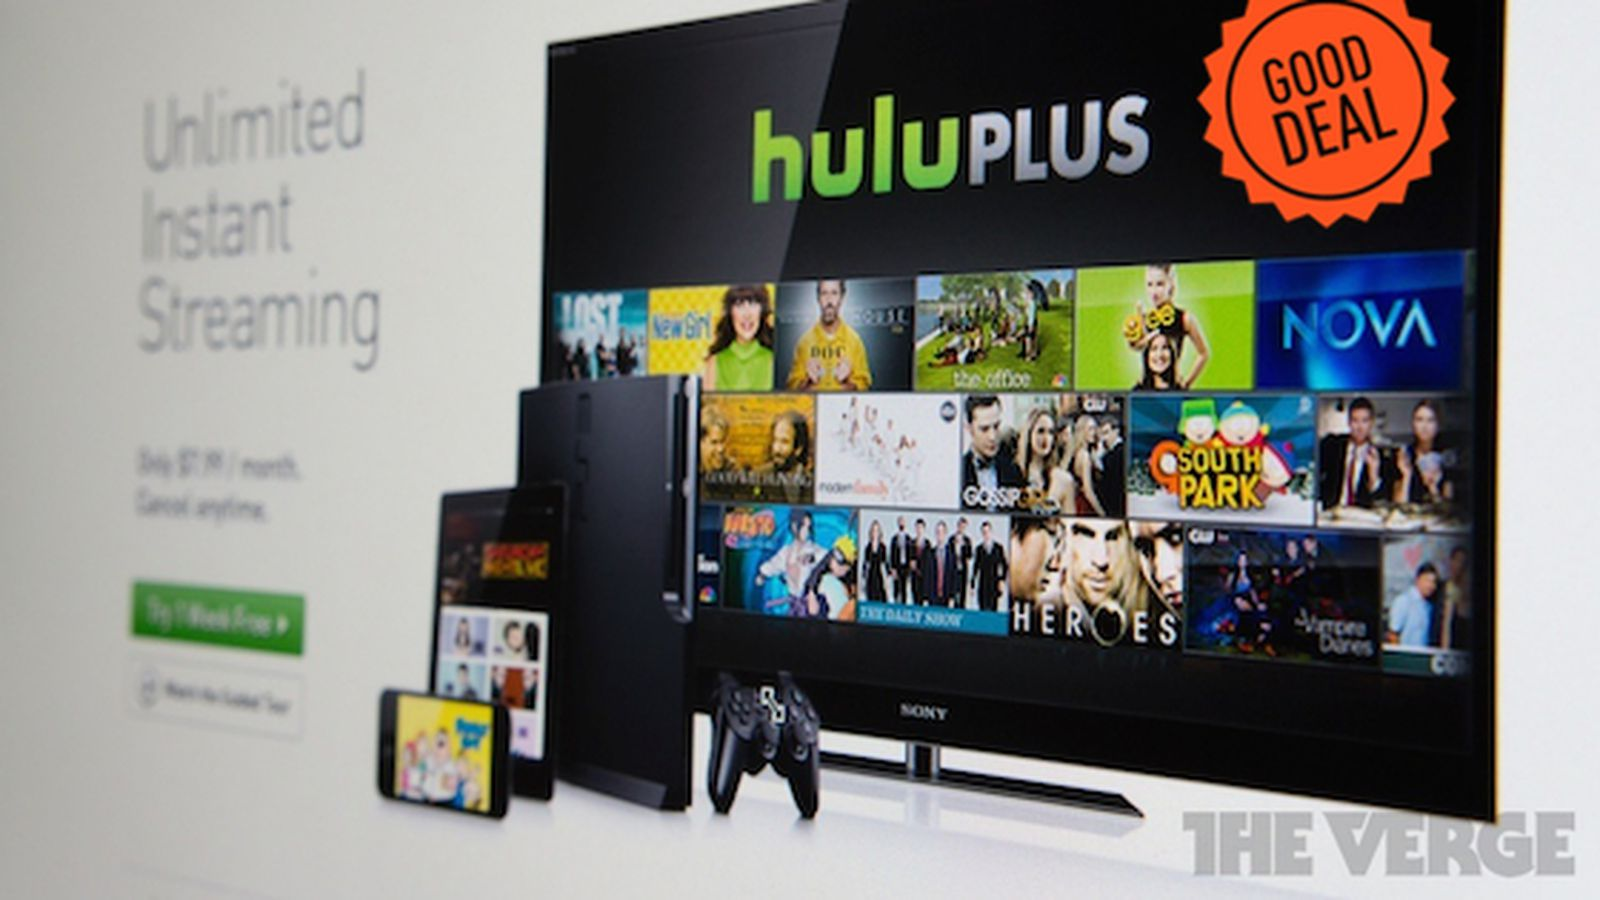 how to get hulu plus free forever